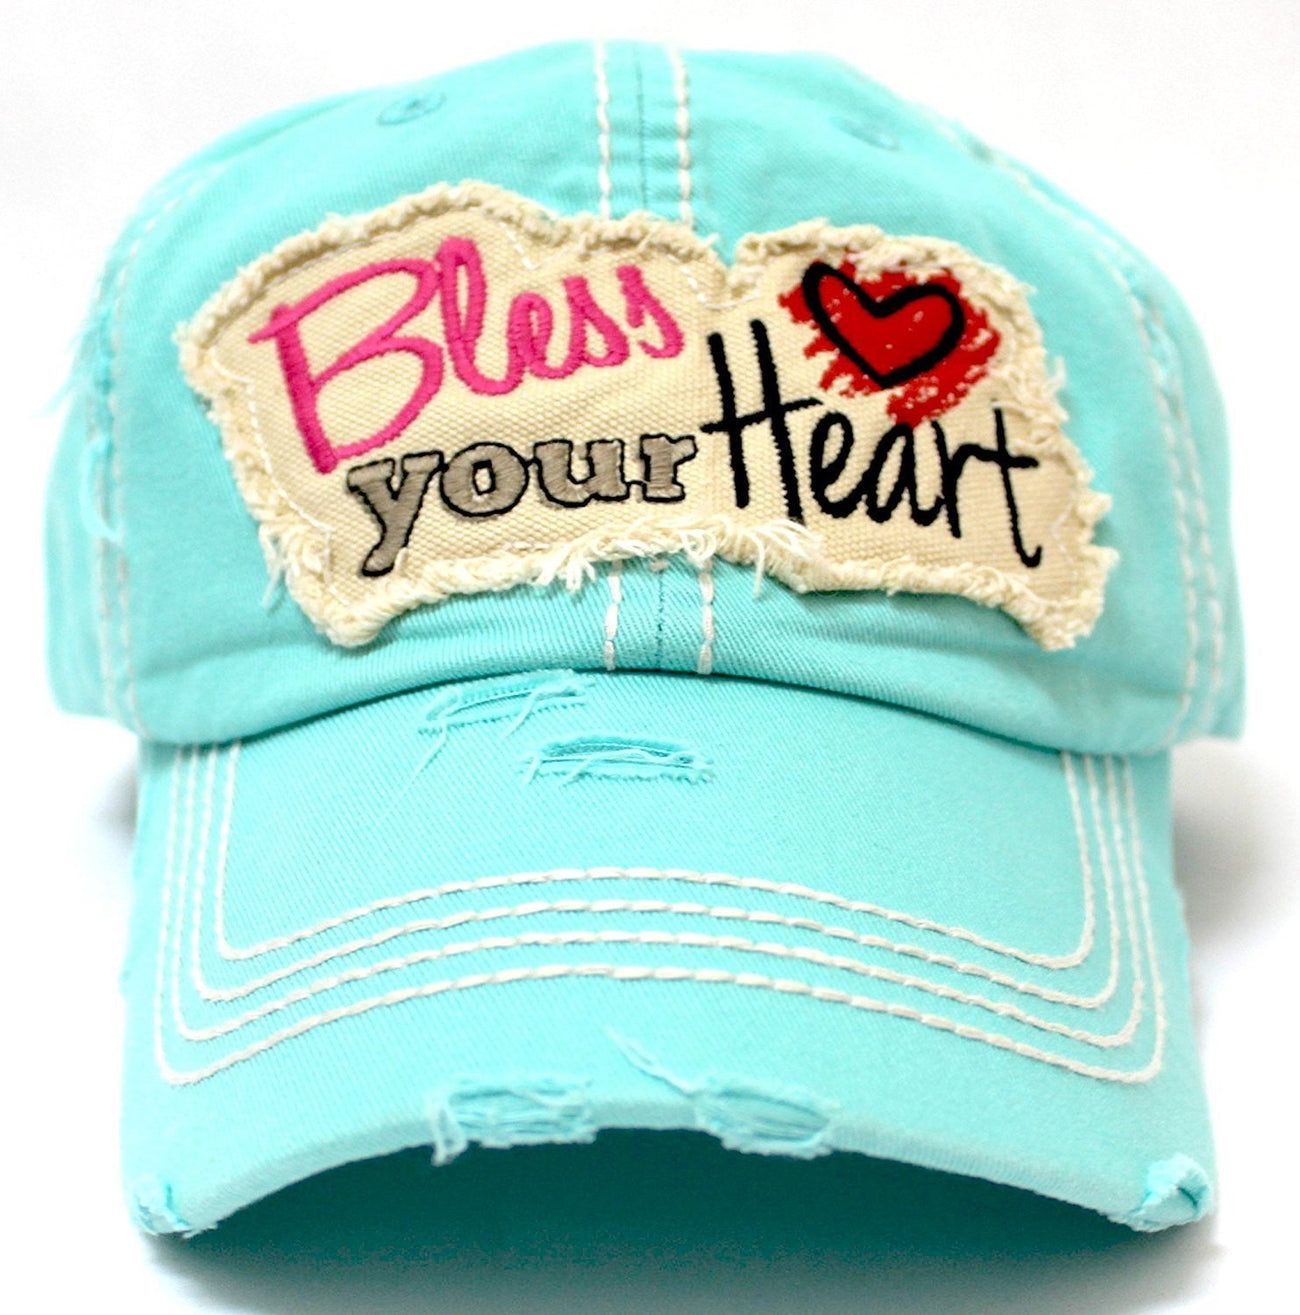 """Bless Your Heart"" Patch on NEW! MINT Vintage Hat w/ Back <3 Detail - Caps 'N Vintage"